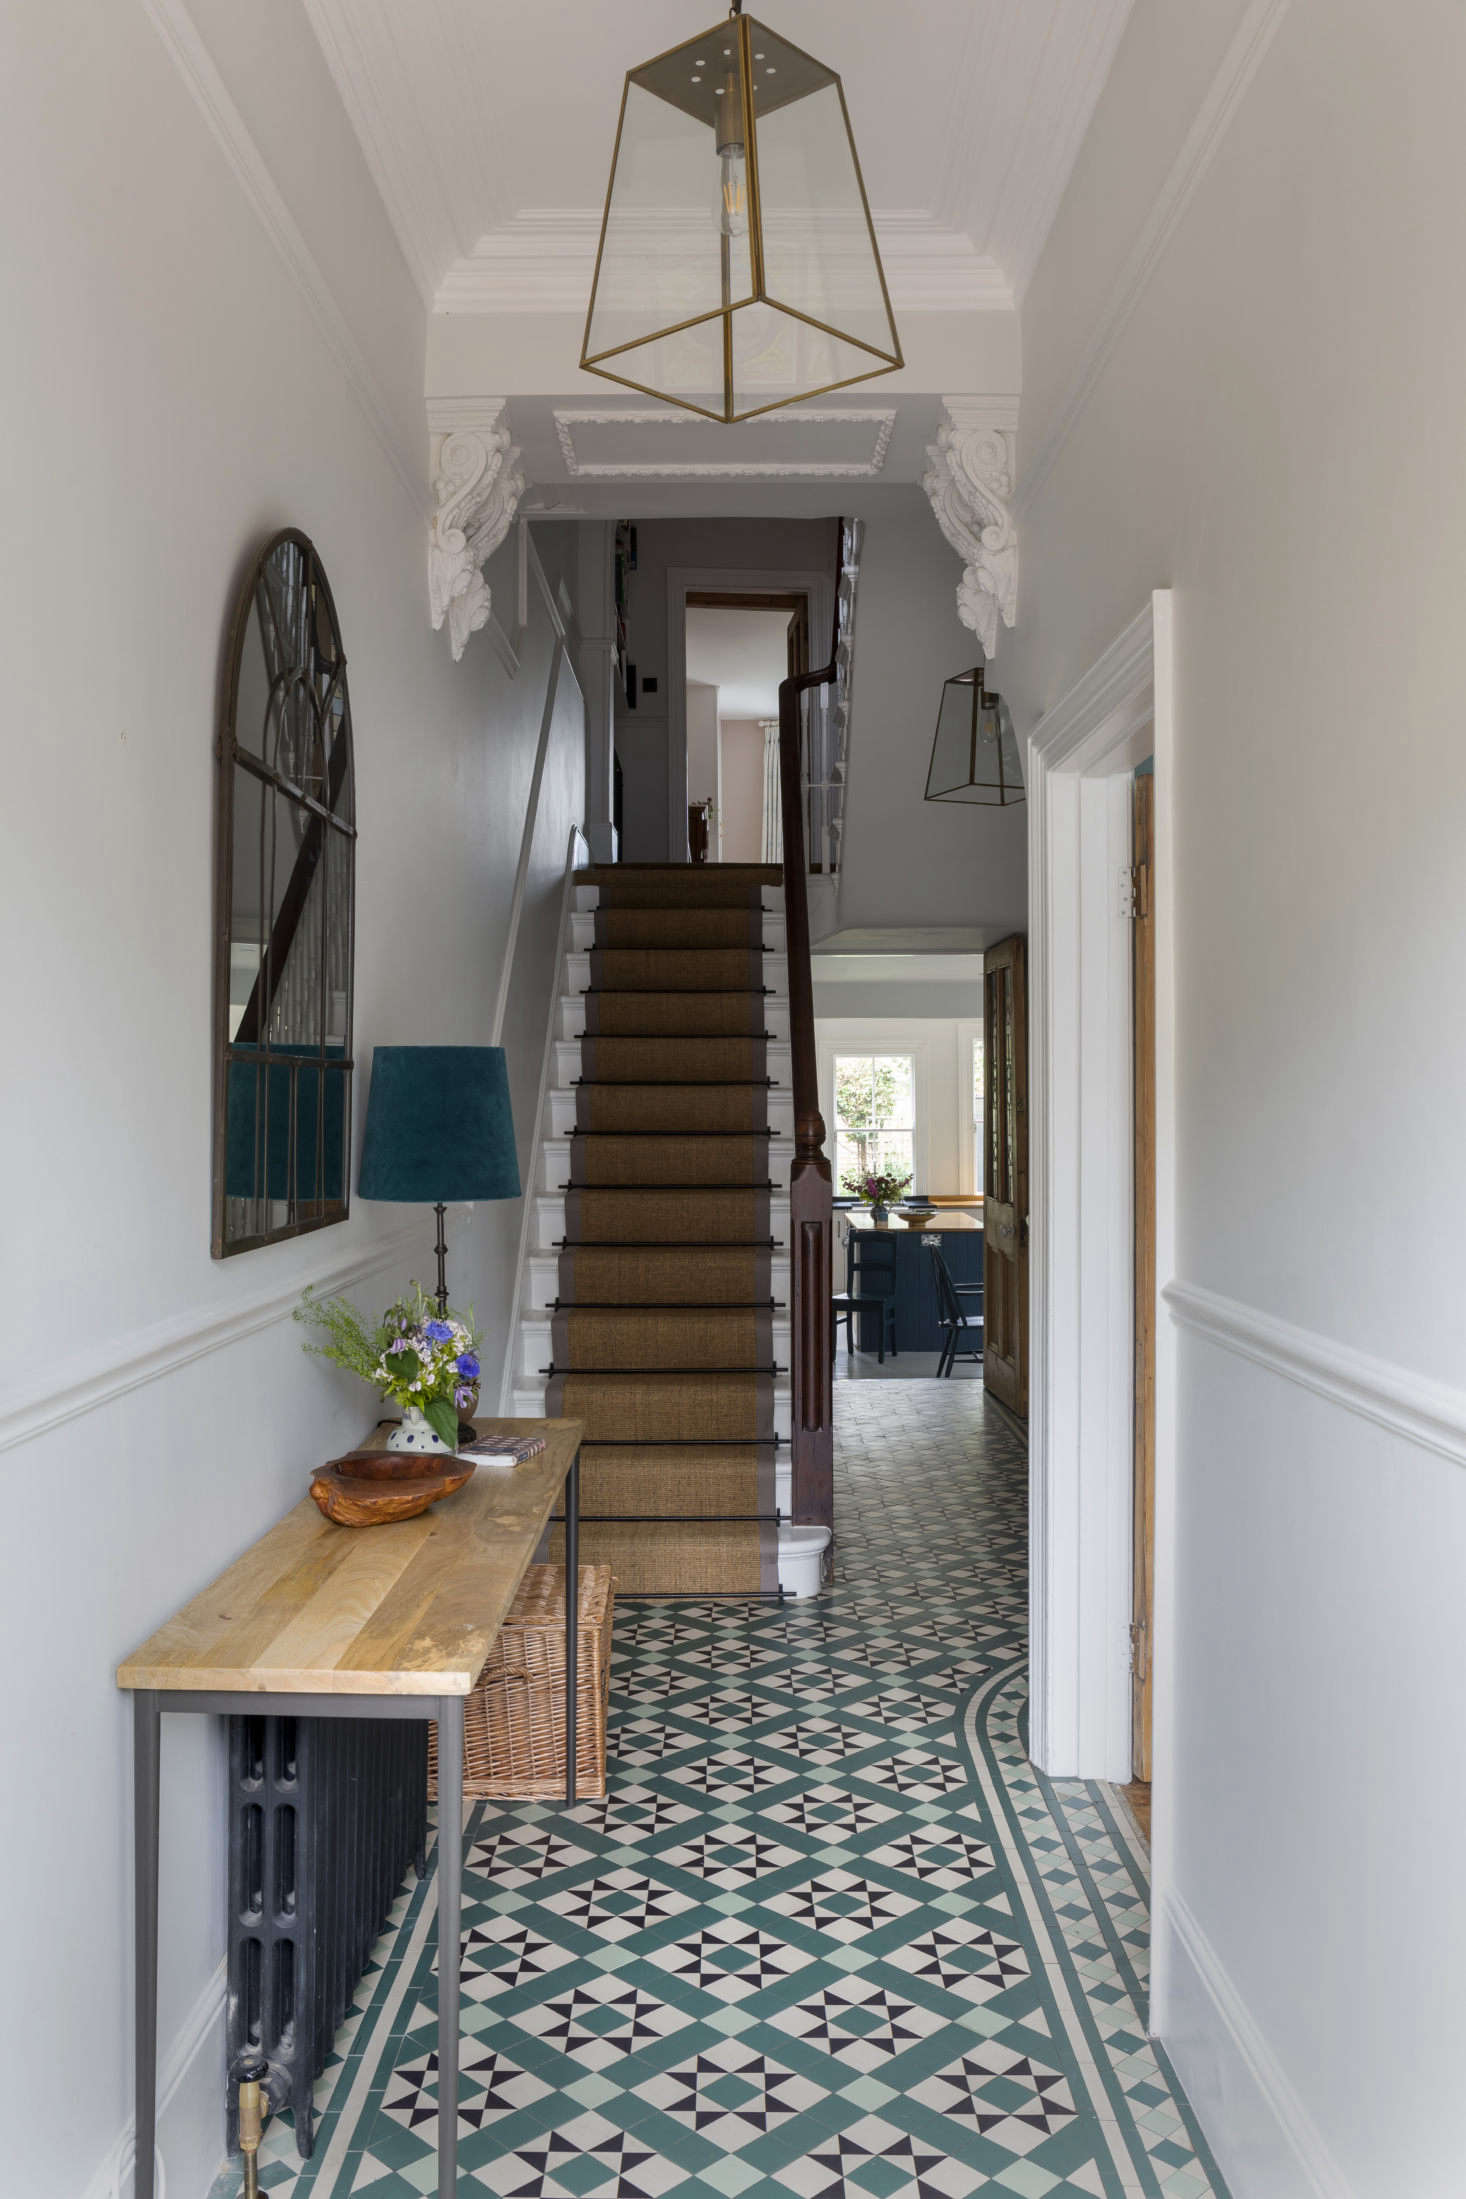 Entrance hallway in this Victorian family home, London